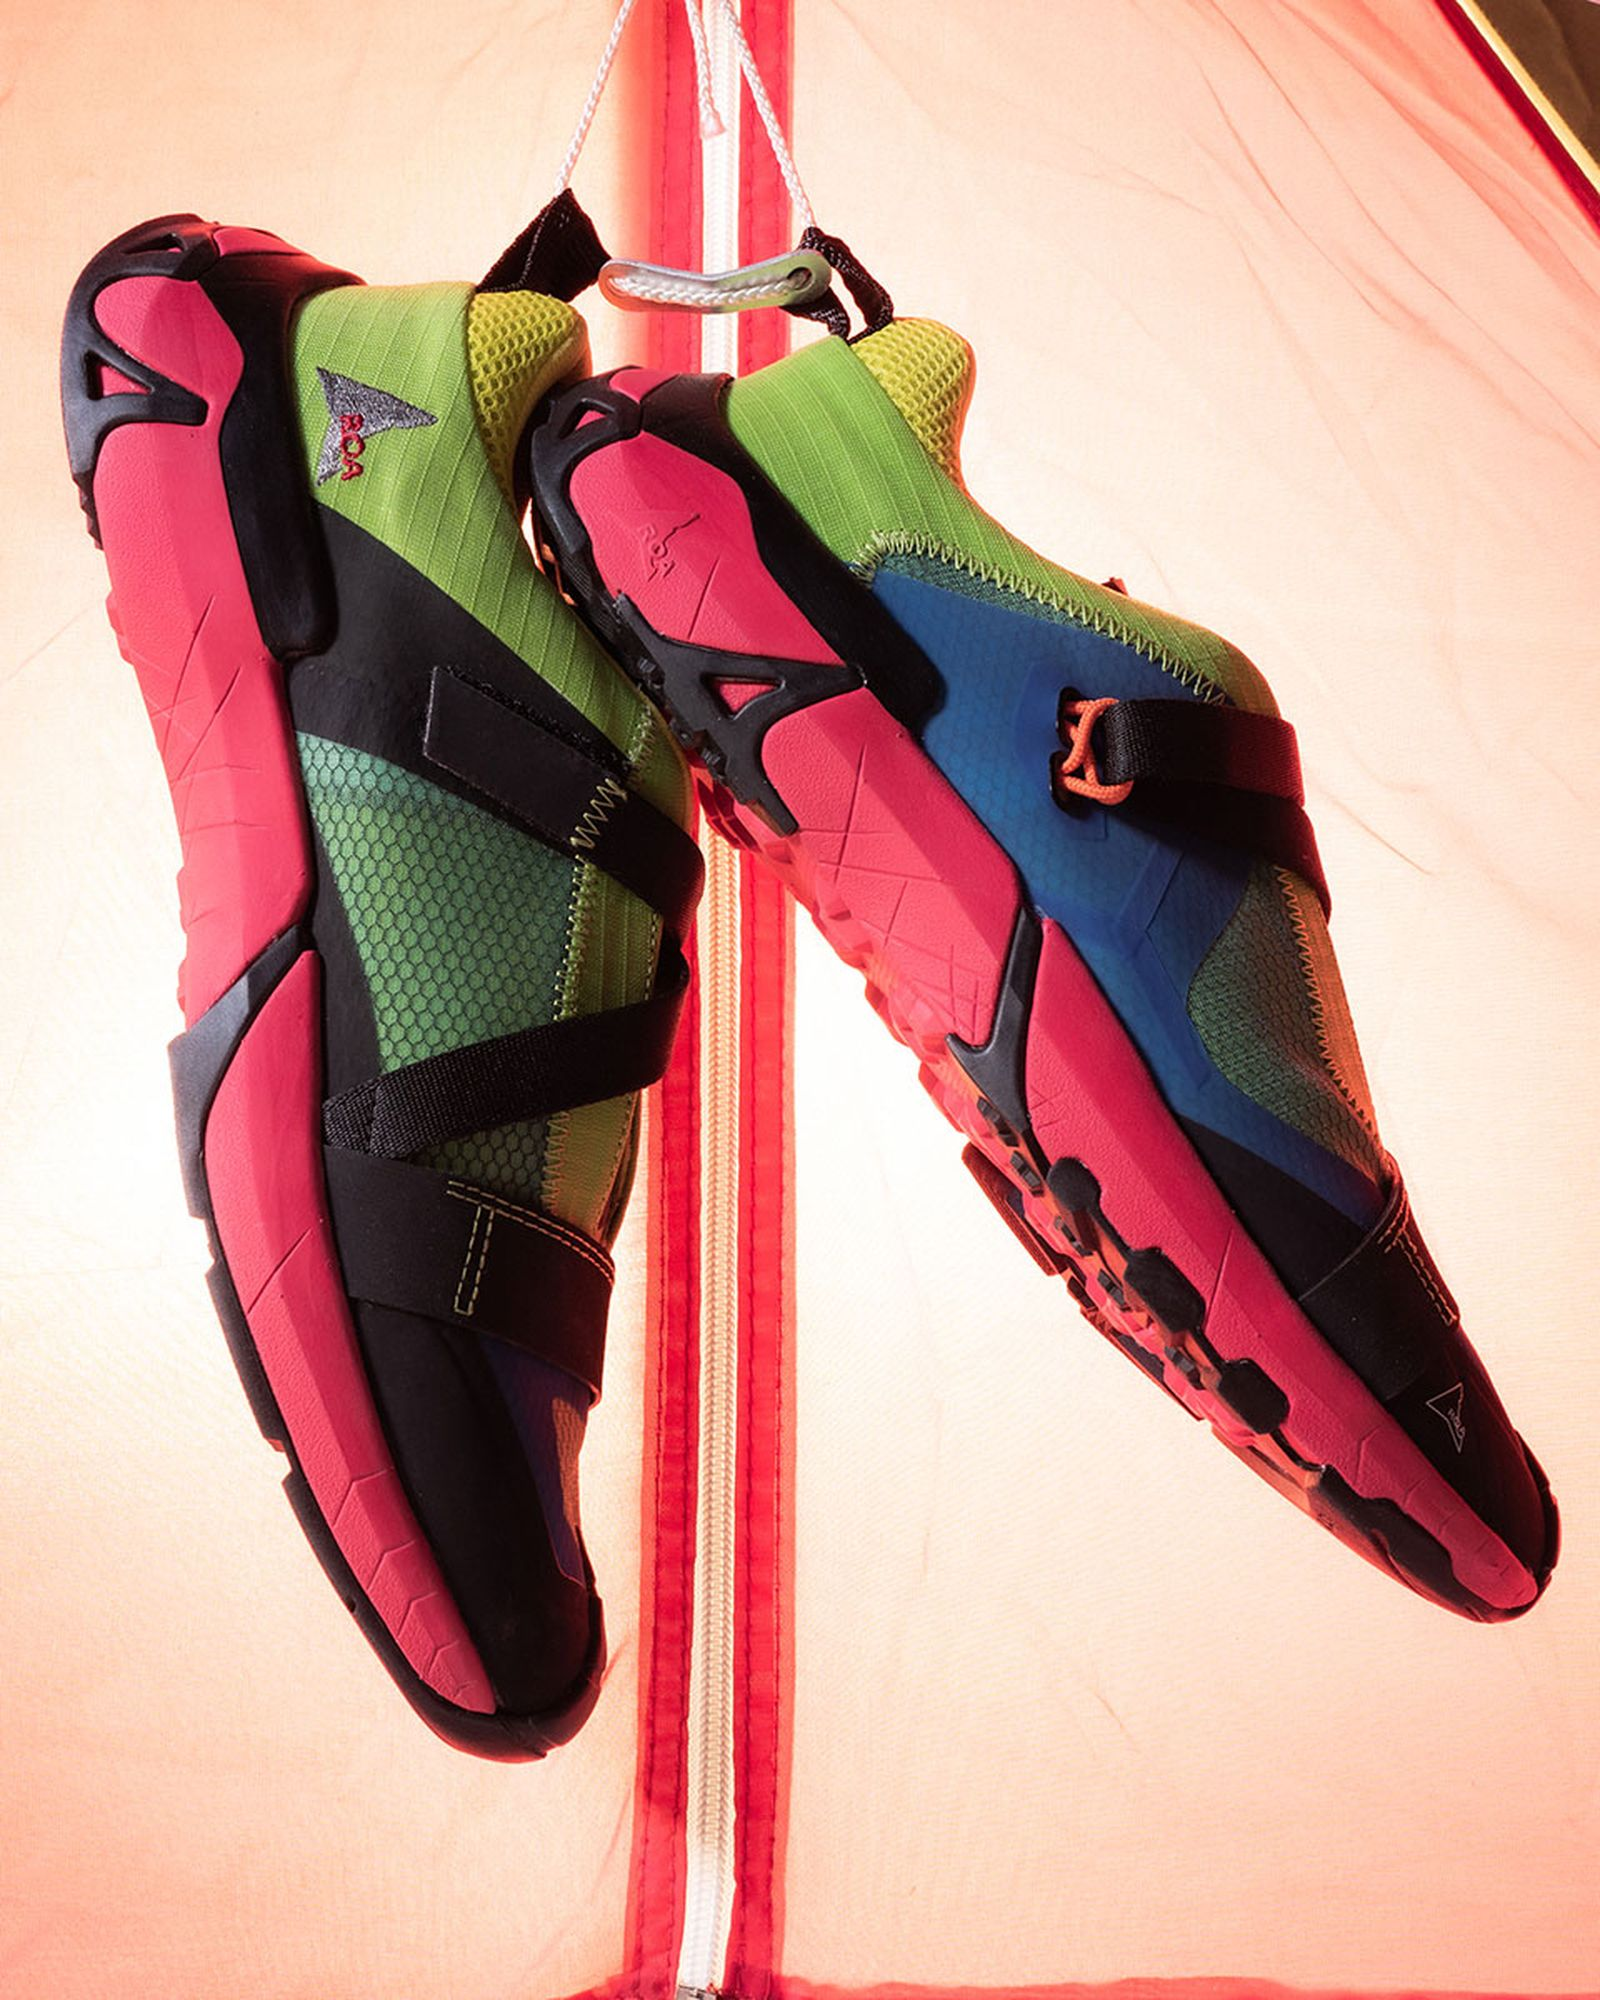 daily-sneaker-news-03-30-2021-1-02